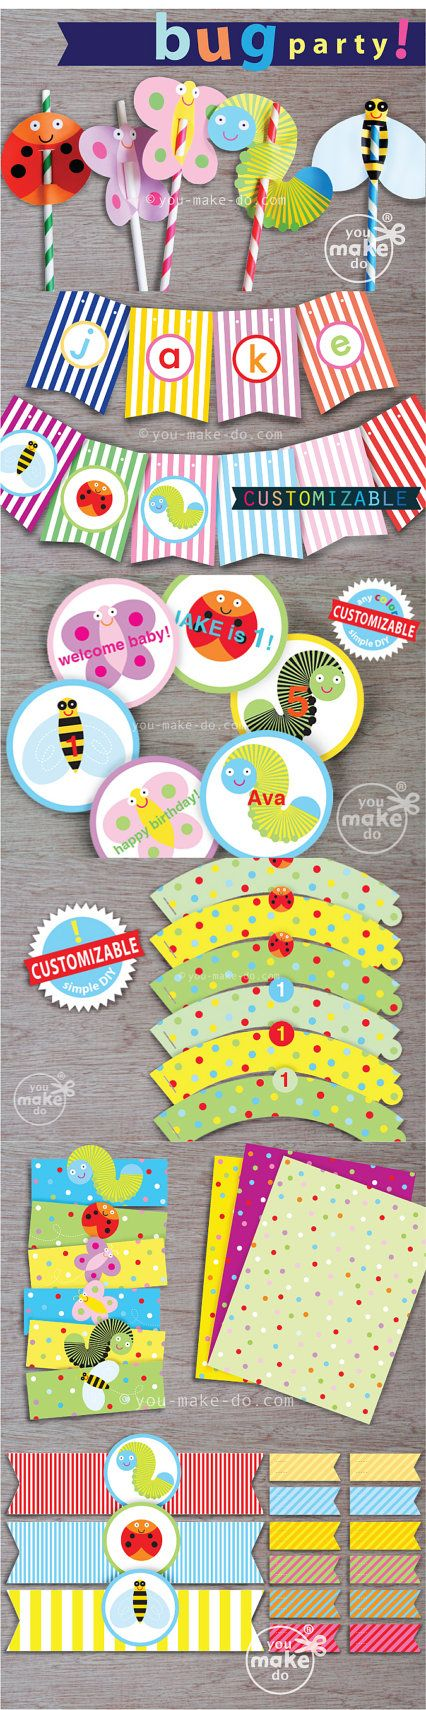 Make a bug party with instant download whimsical bug party printables! Some of these bug party theme printables are CUSTOMIZABLE—add special messages, children's names, or other words to your customizable party printables yourself! Simply click and type on your customizable printables before printing at home or your favorite copy shop! Use these party printables for a bug birthday party, a bug baby shower theme, a classroom party, or a bug first birthday party!